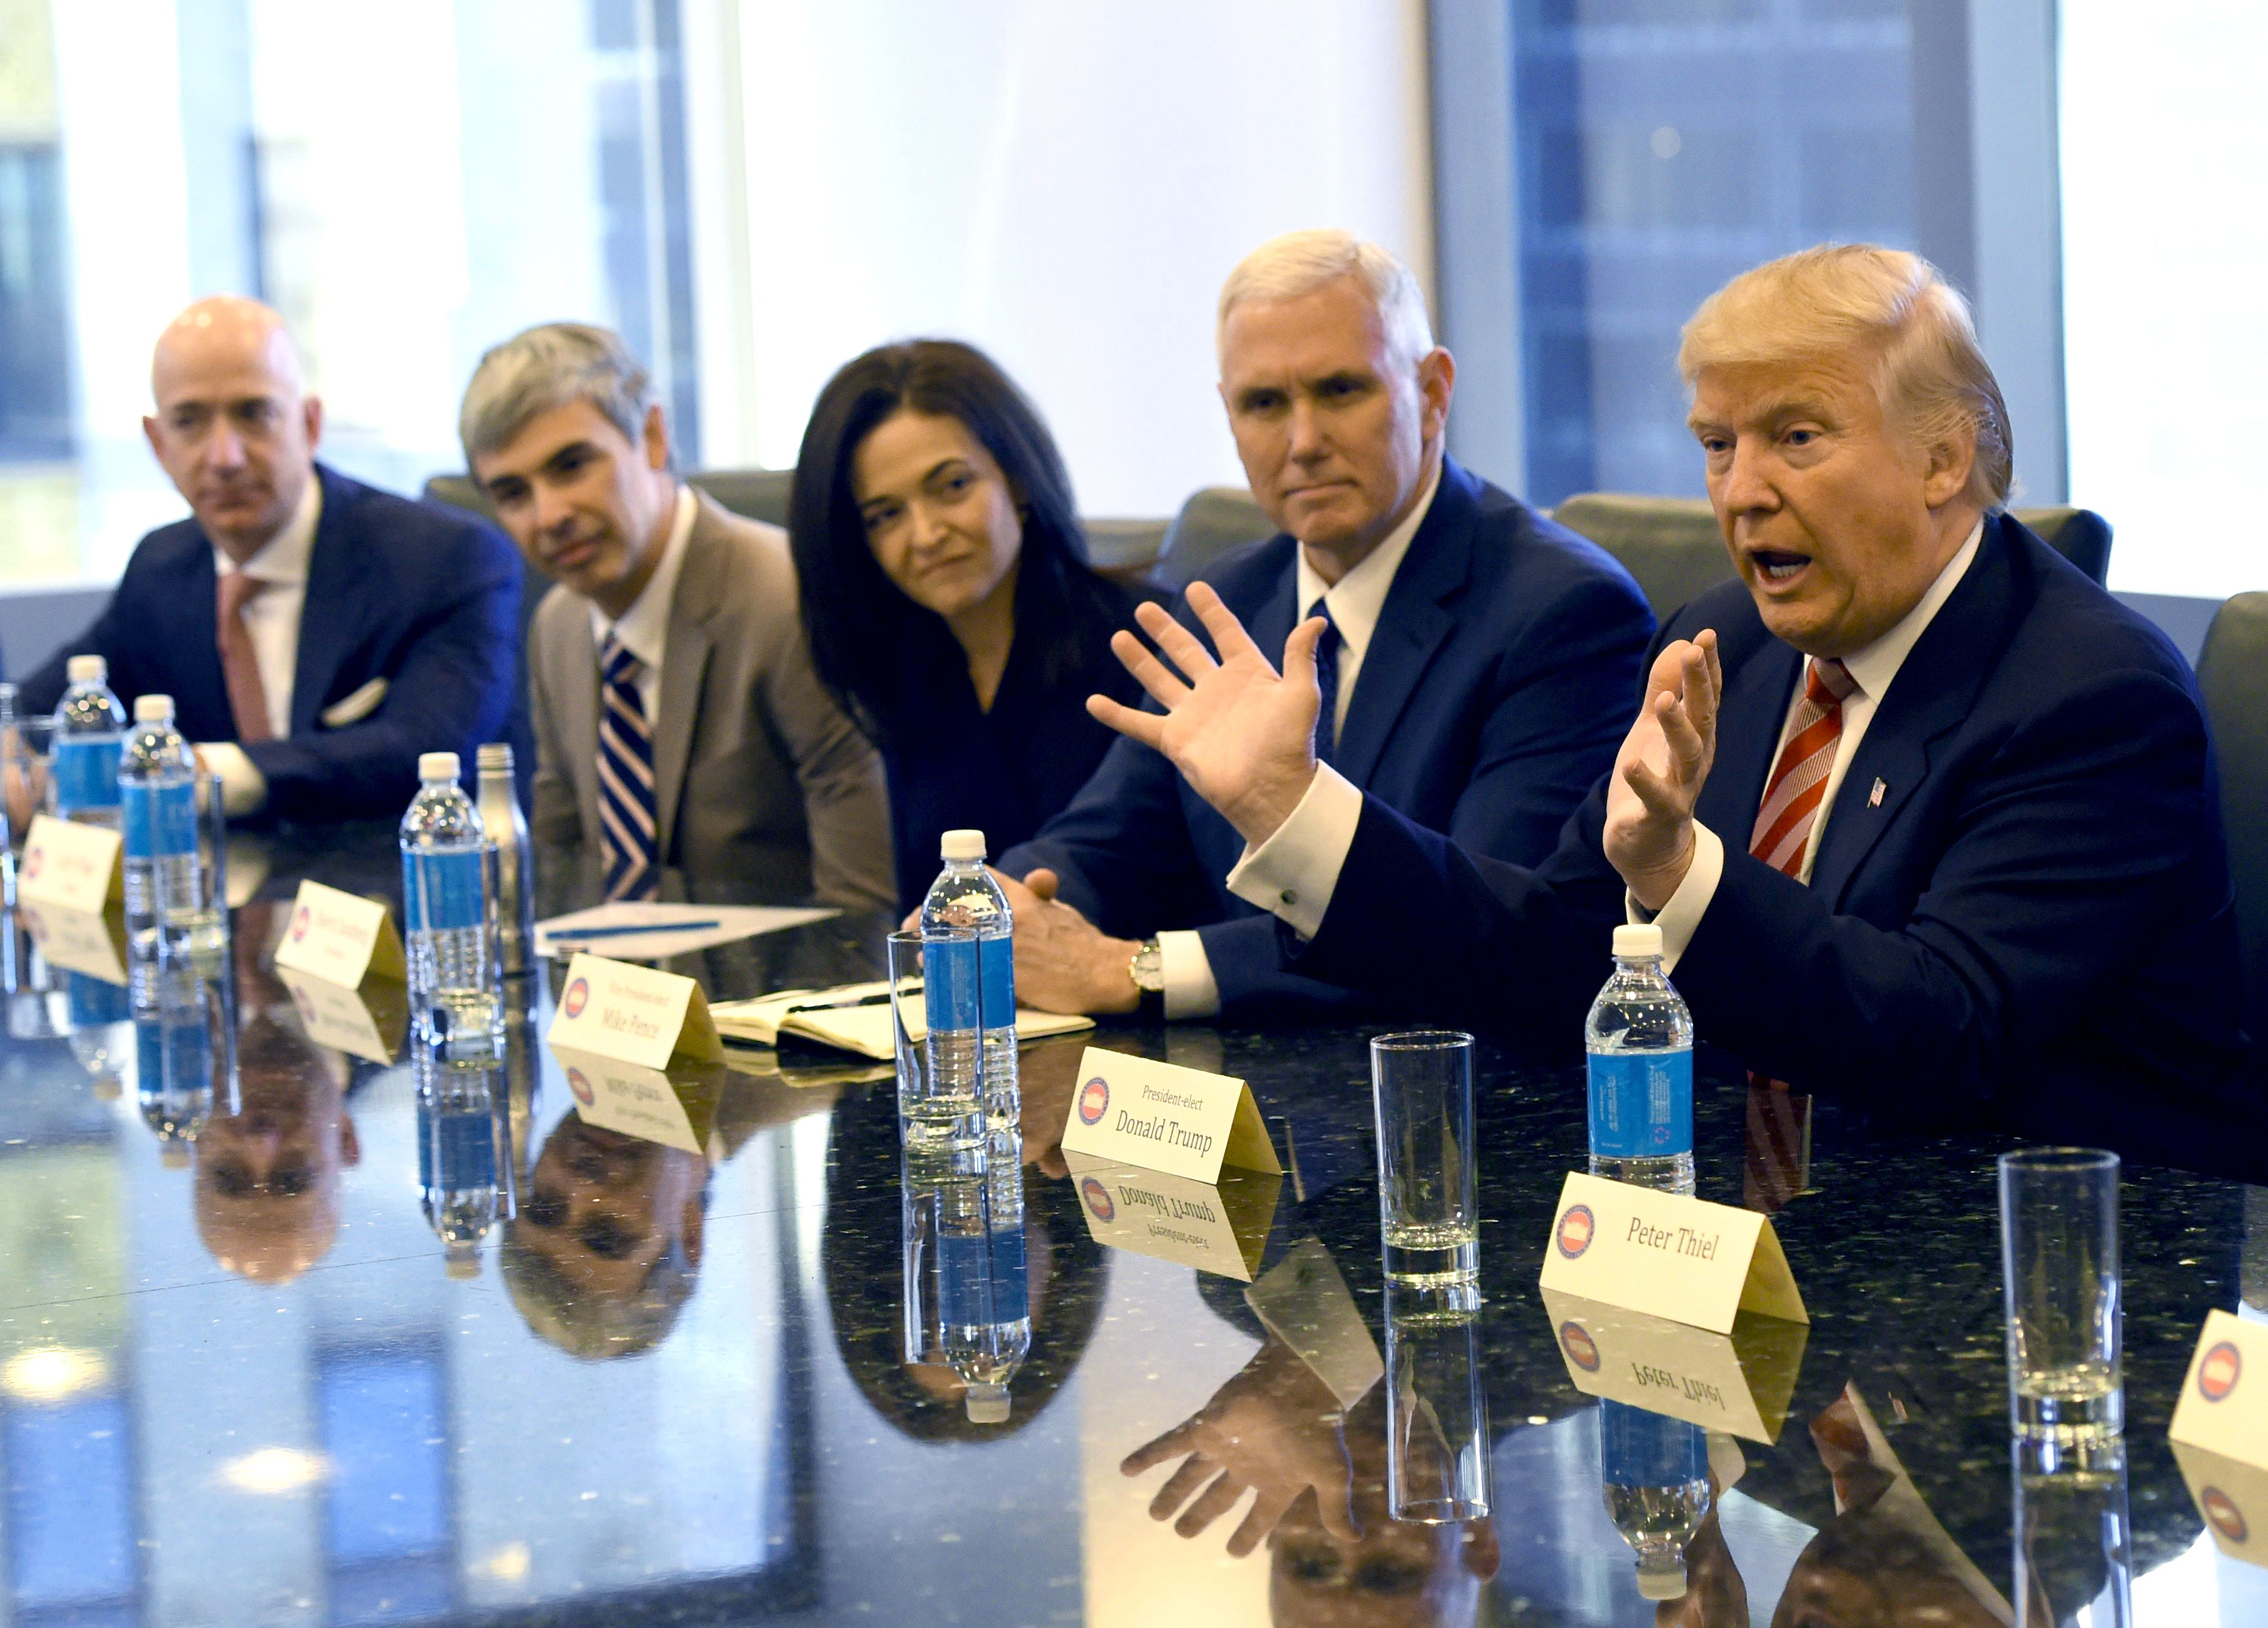 President Donald Trump meeting Silicon Valley leaders